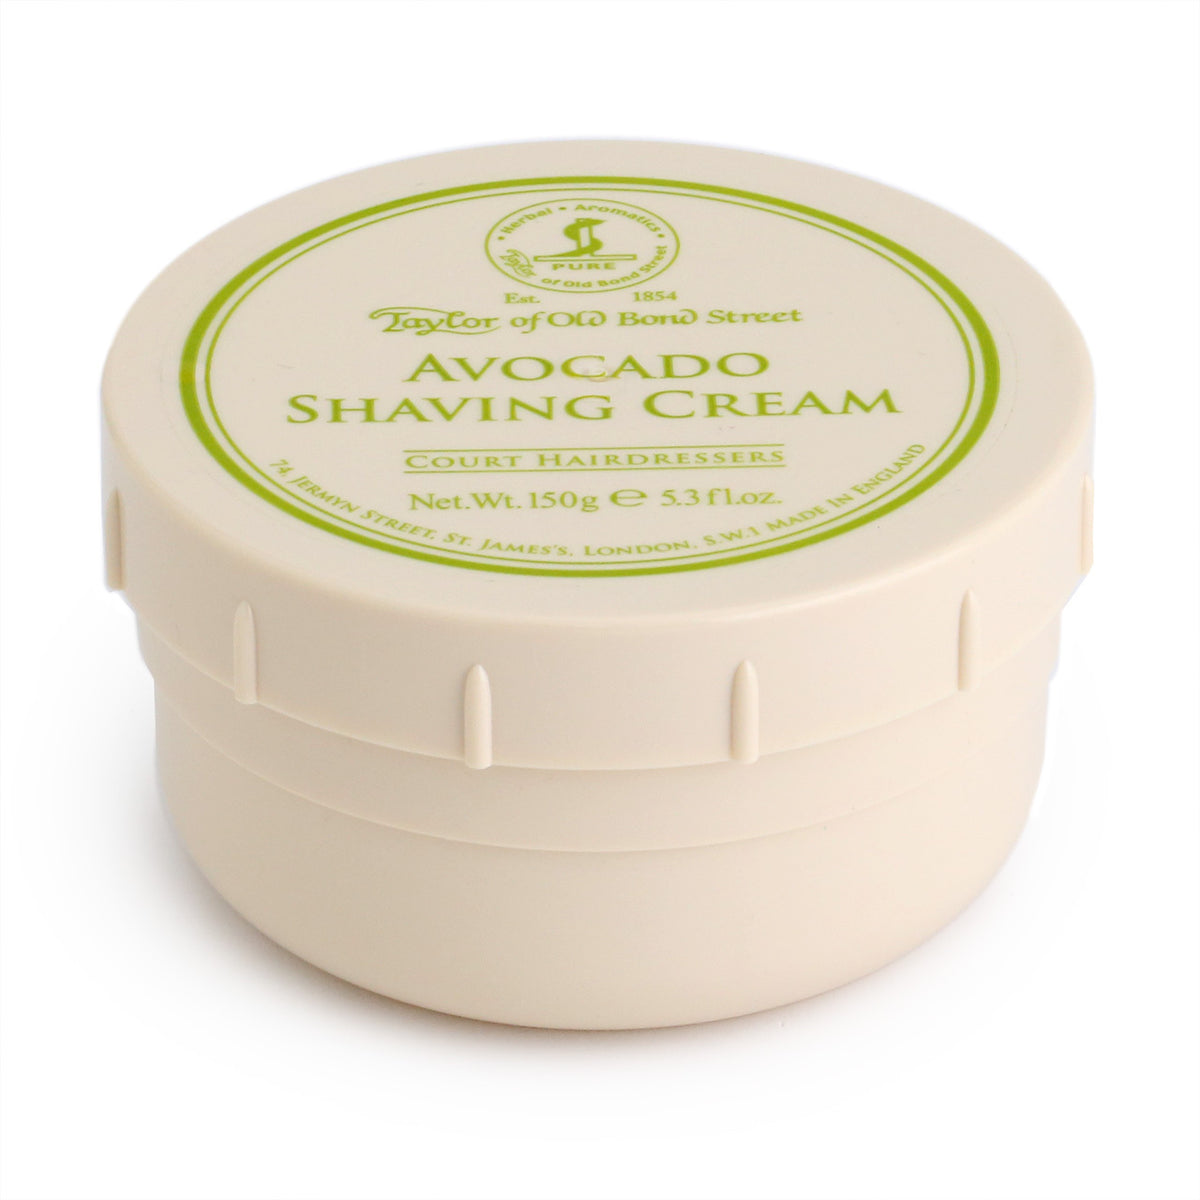 Taylor of Old Bond Street Shaving Cream Bowl 150g - Avocado